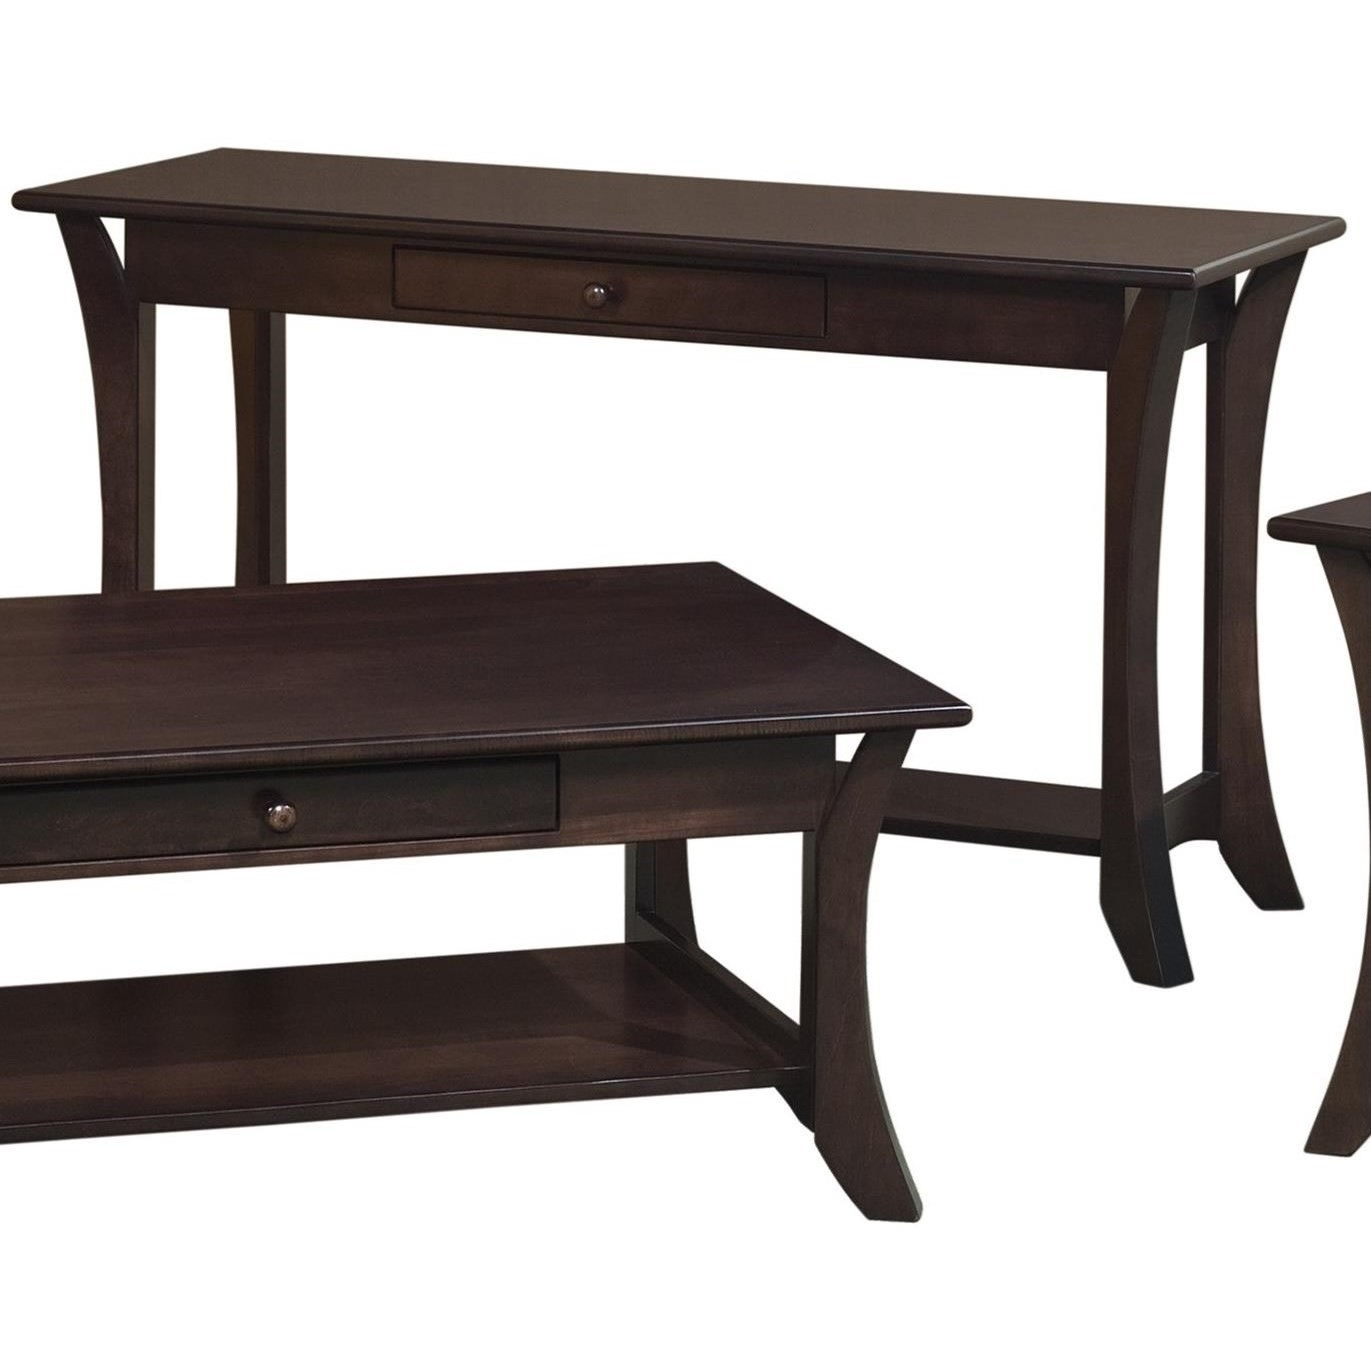 Catalina Sofa Table by Crystal Valley Hardwoods at Saugerties Furniture Mart